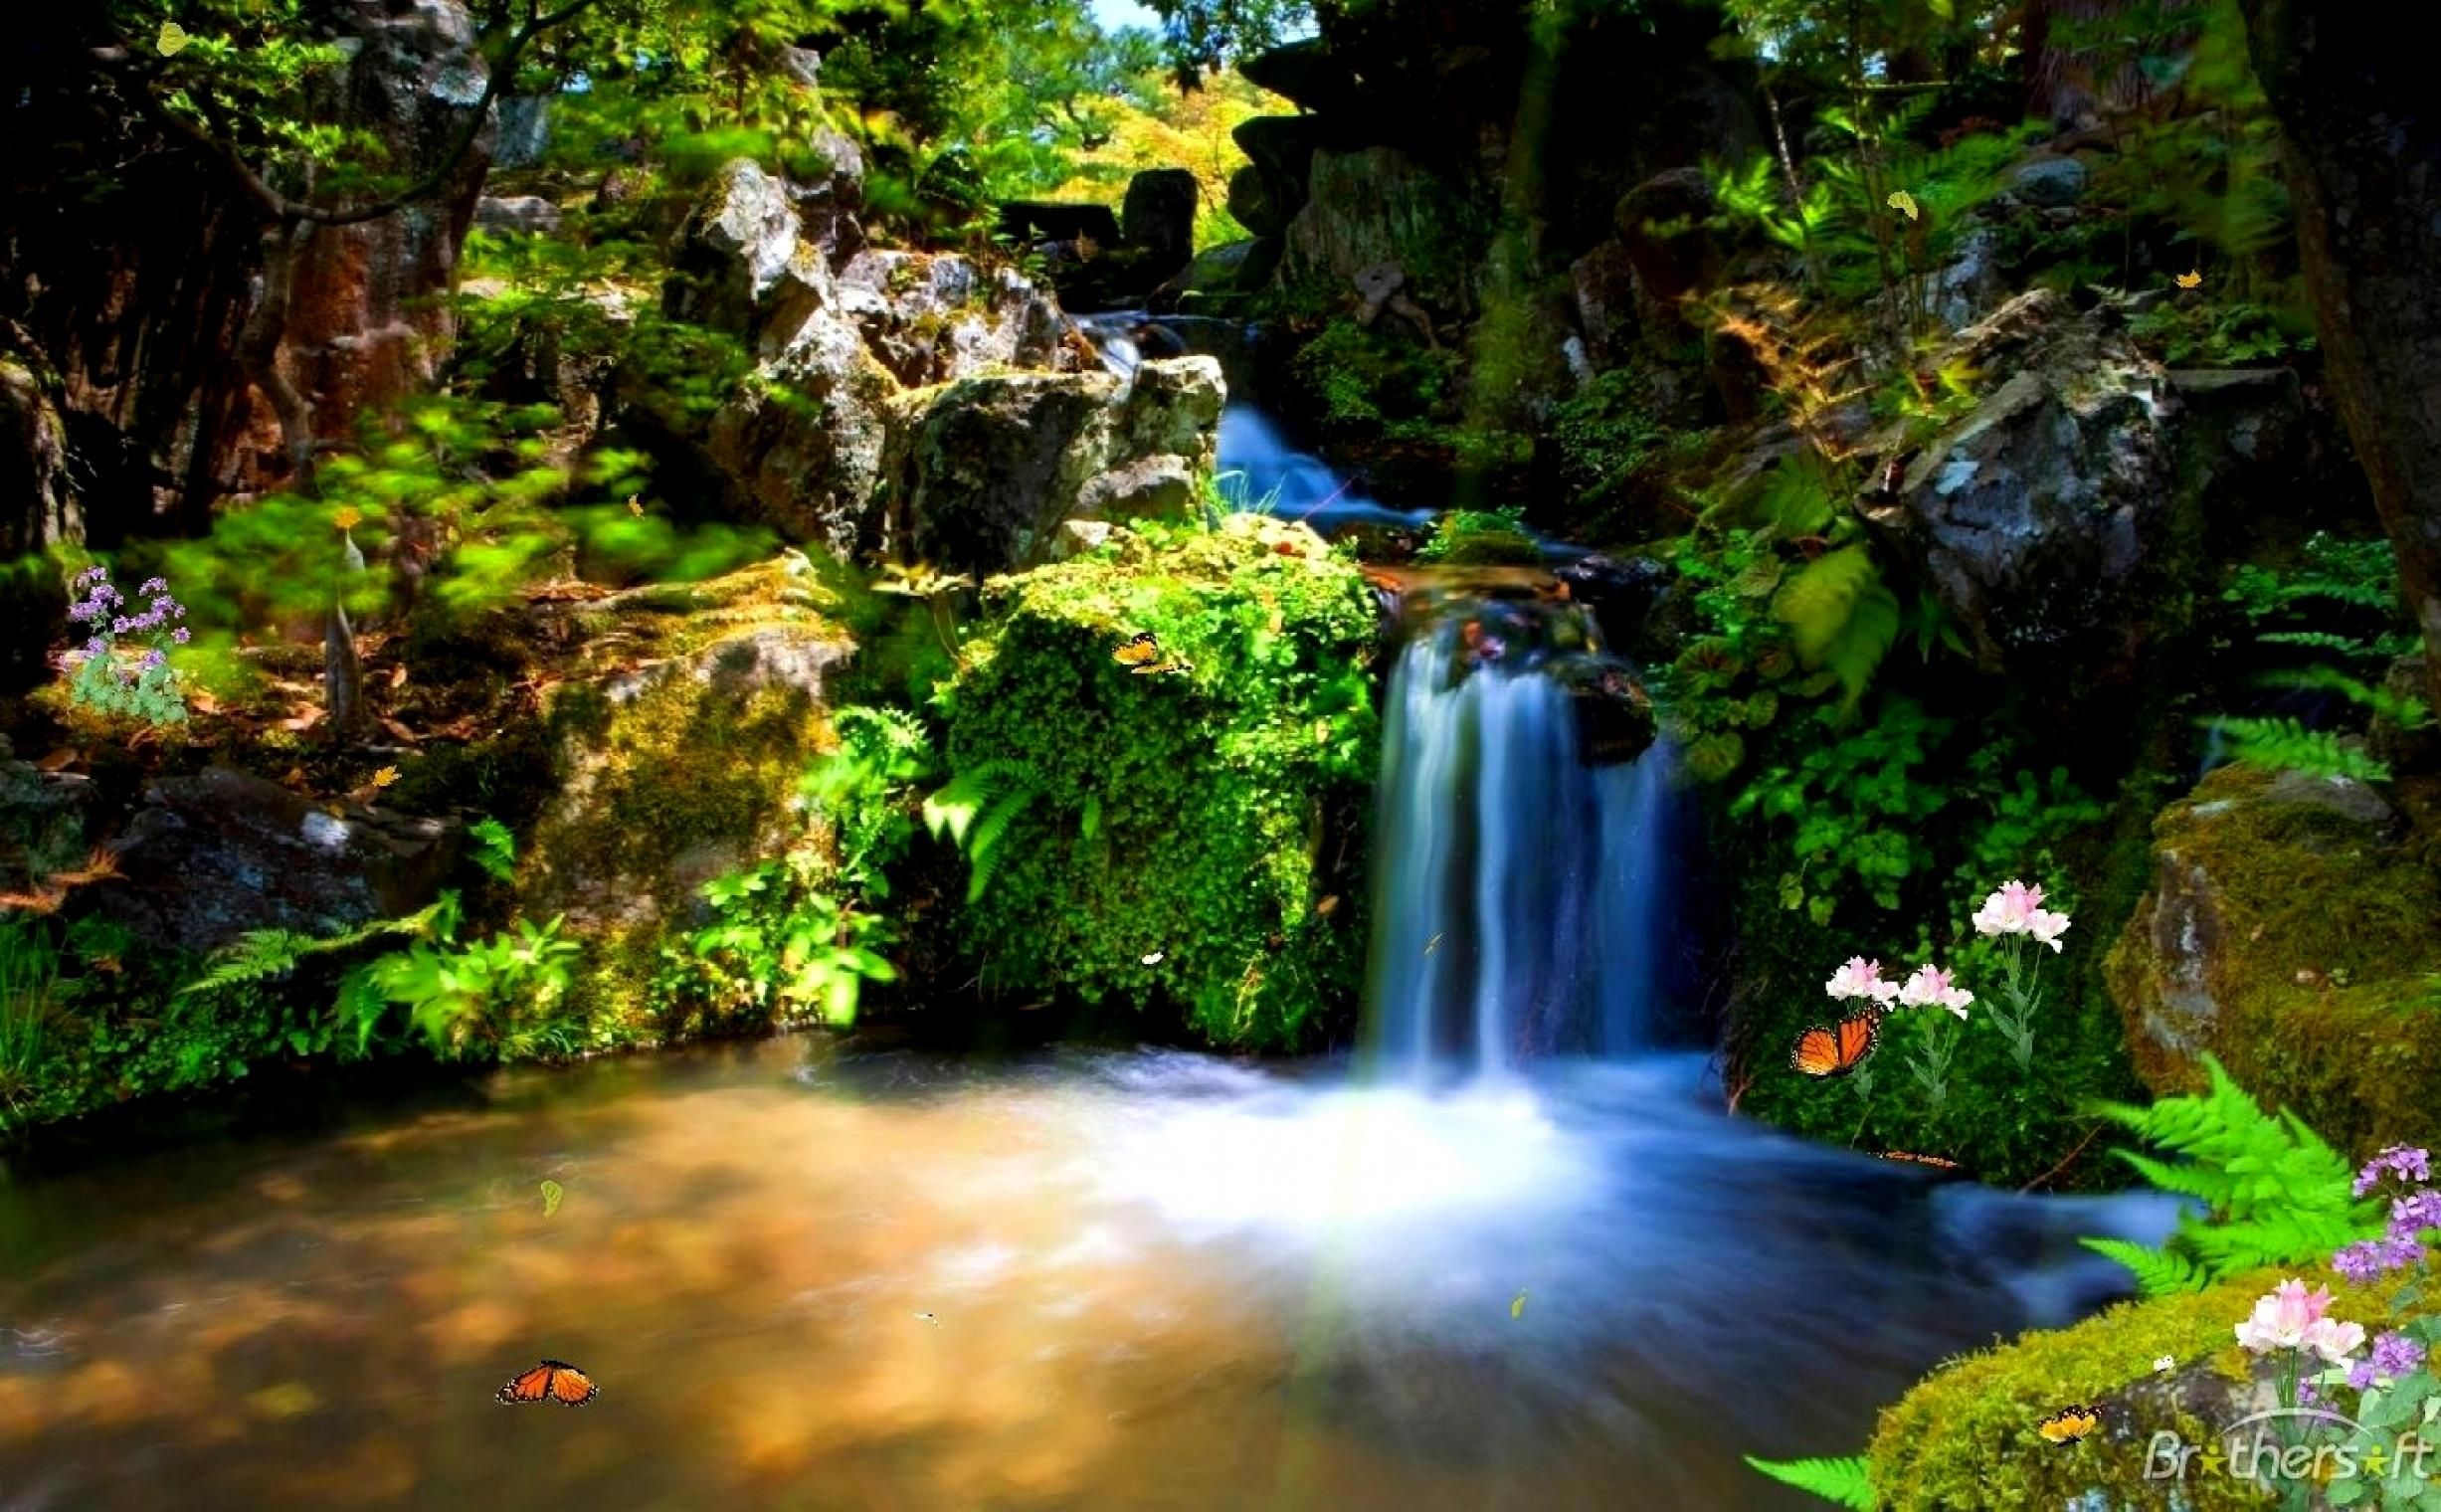 Live Waterfall Wallpaper Screensaver (55+ images) (With